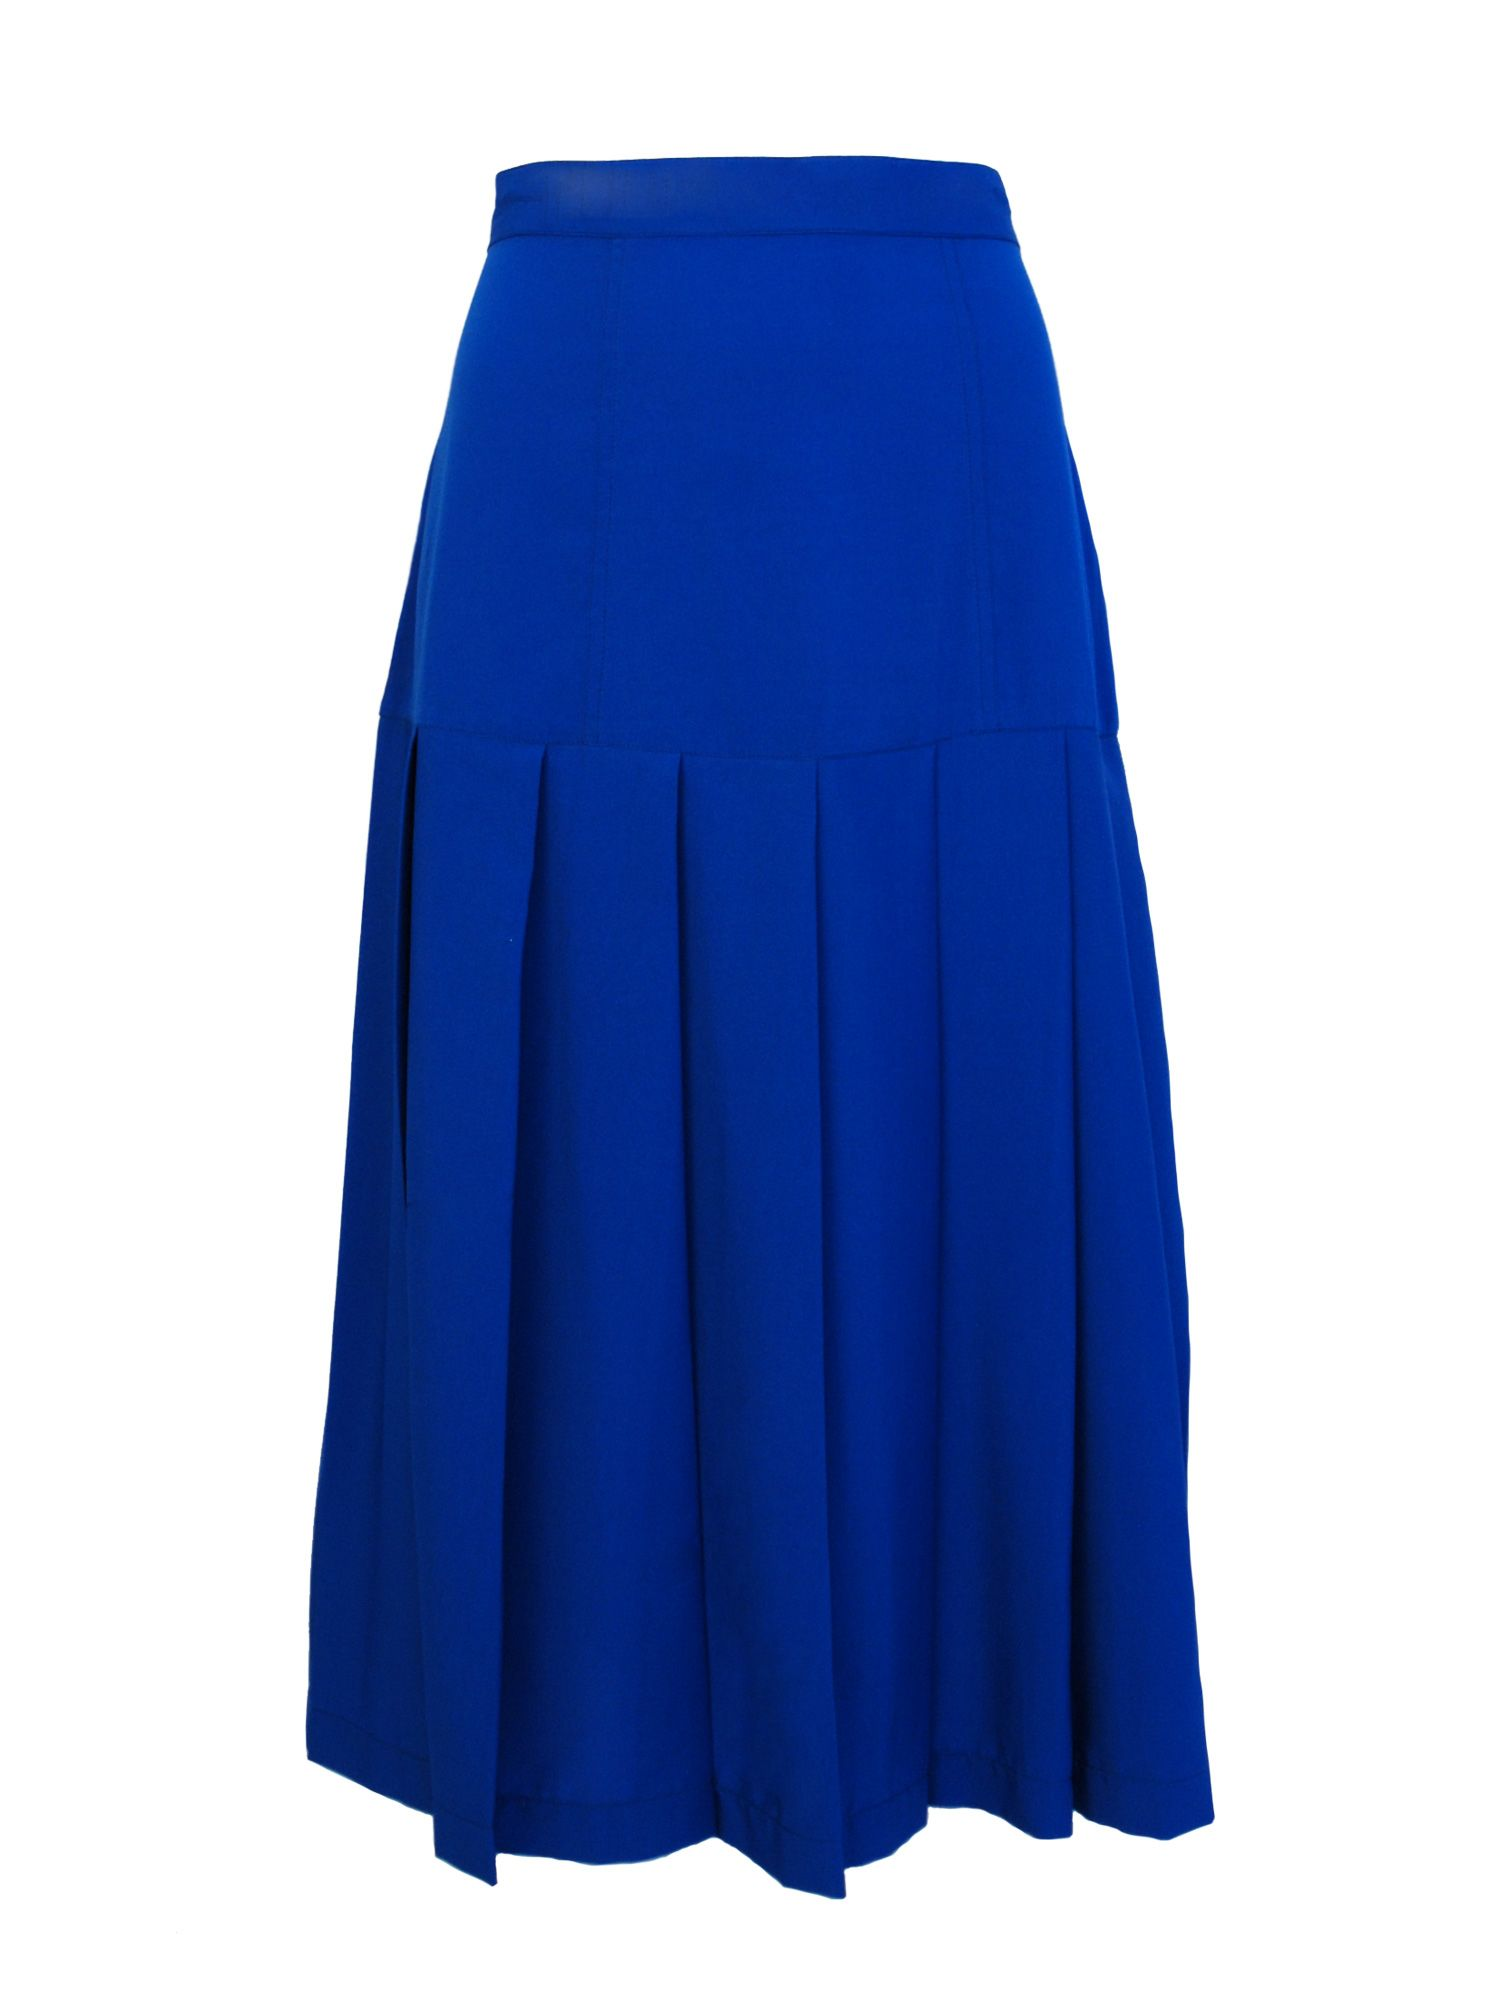 1920s Style Skirts Cutie Pleated Midi Skirt £17.00 AT vintagedancer.com